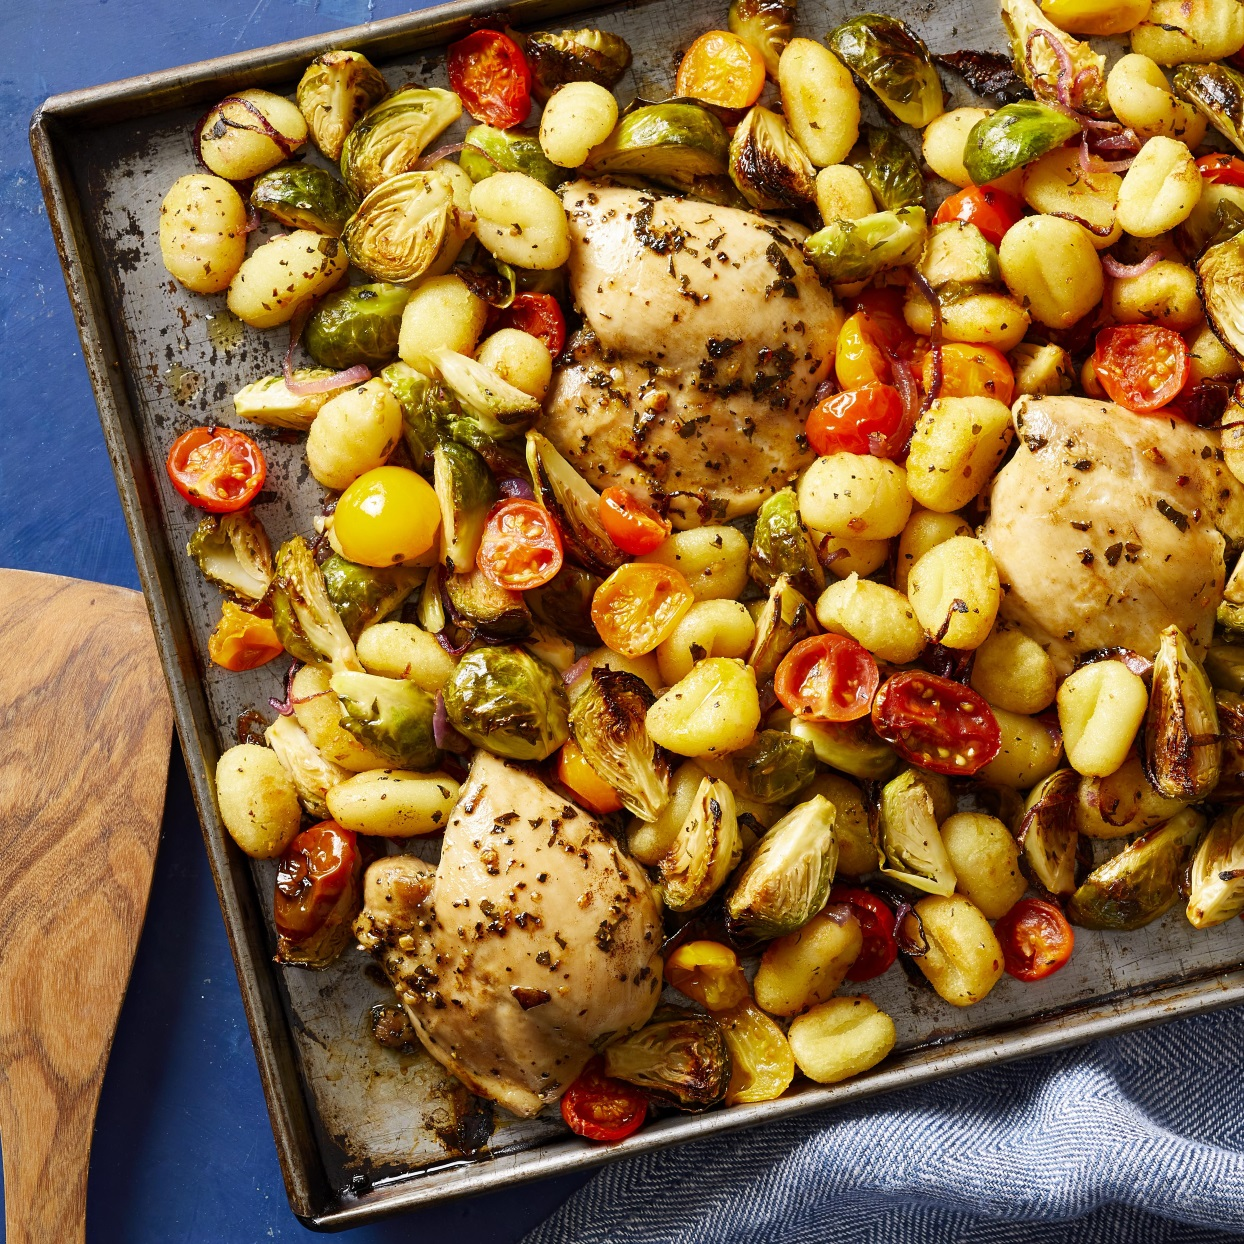 Sheet-Pan Mediterranean Chicken, Brussels Sprouts & Gnocchi Carolyn Casner